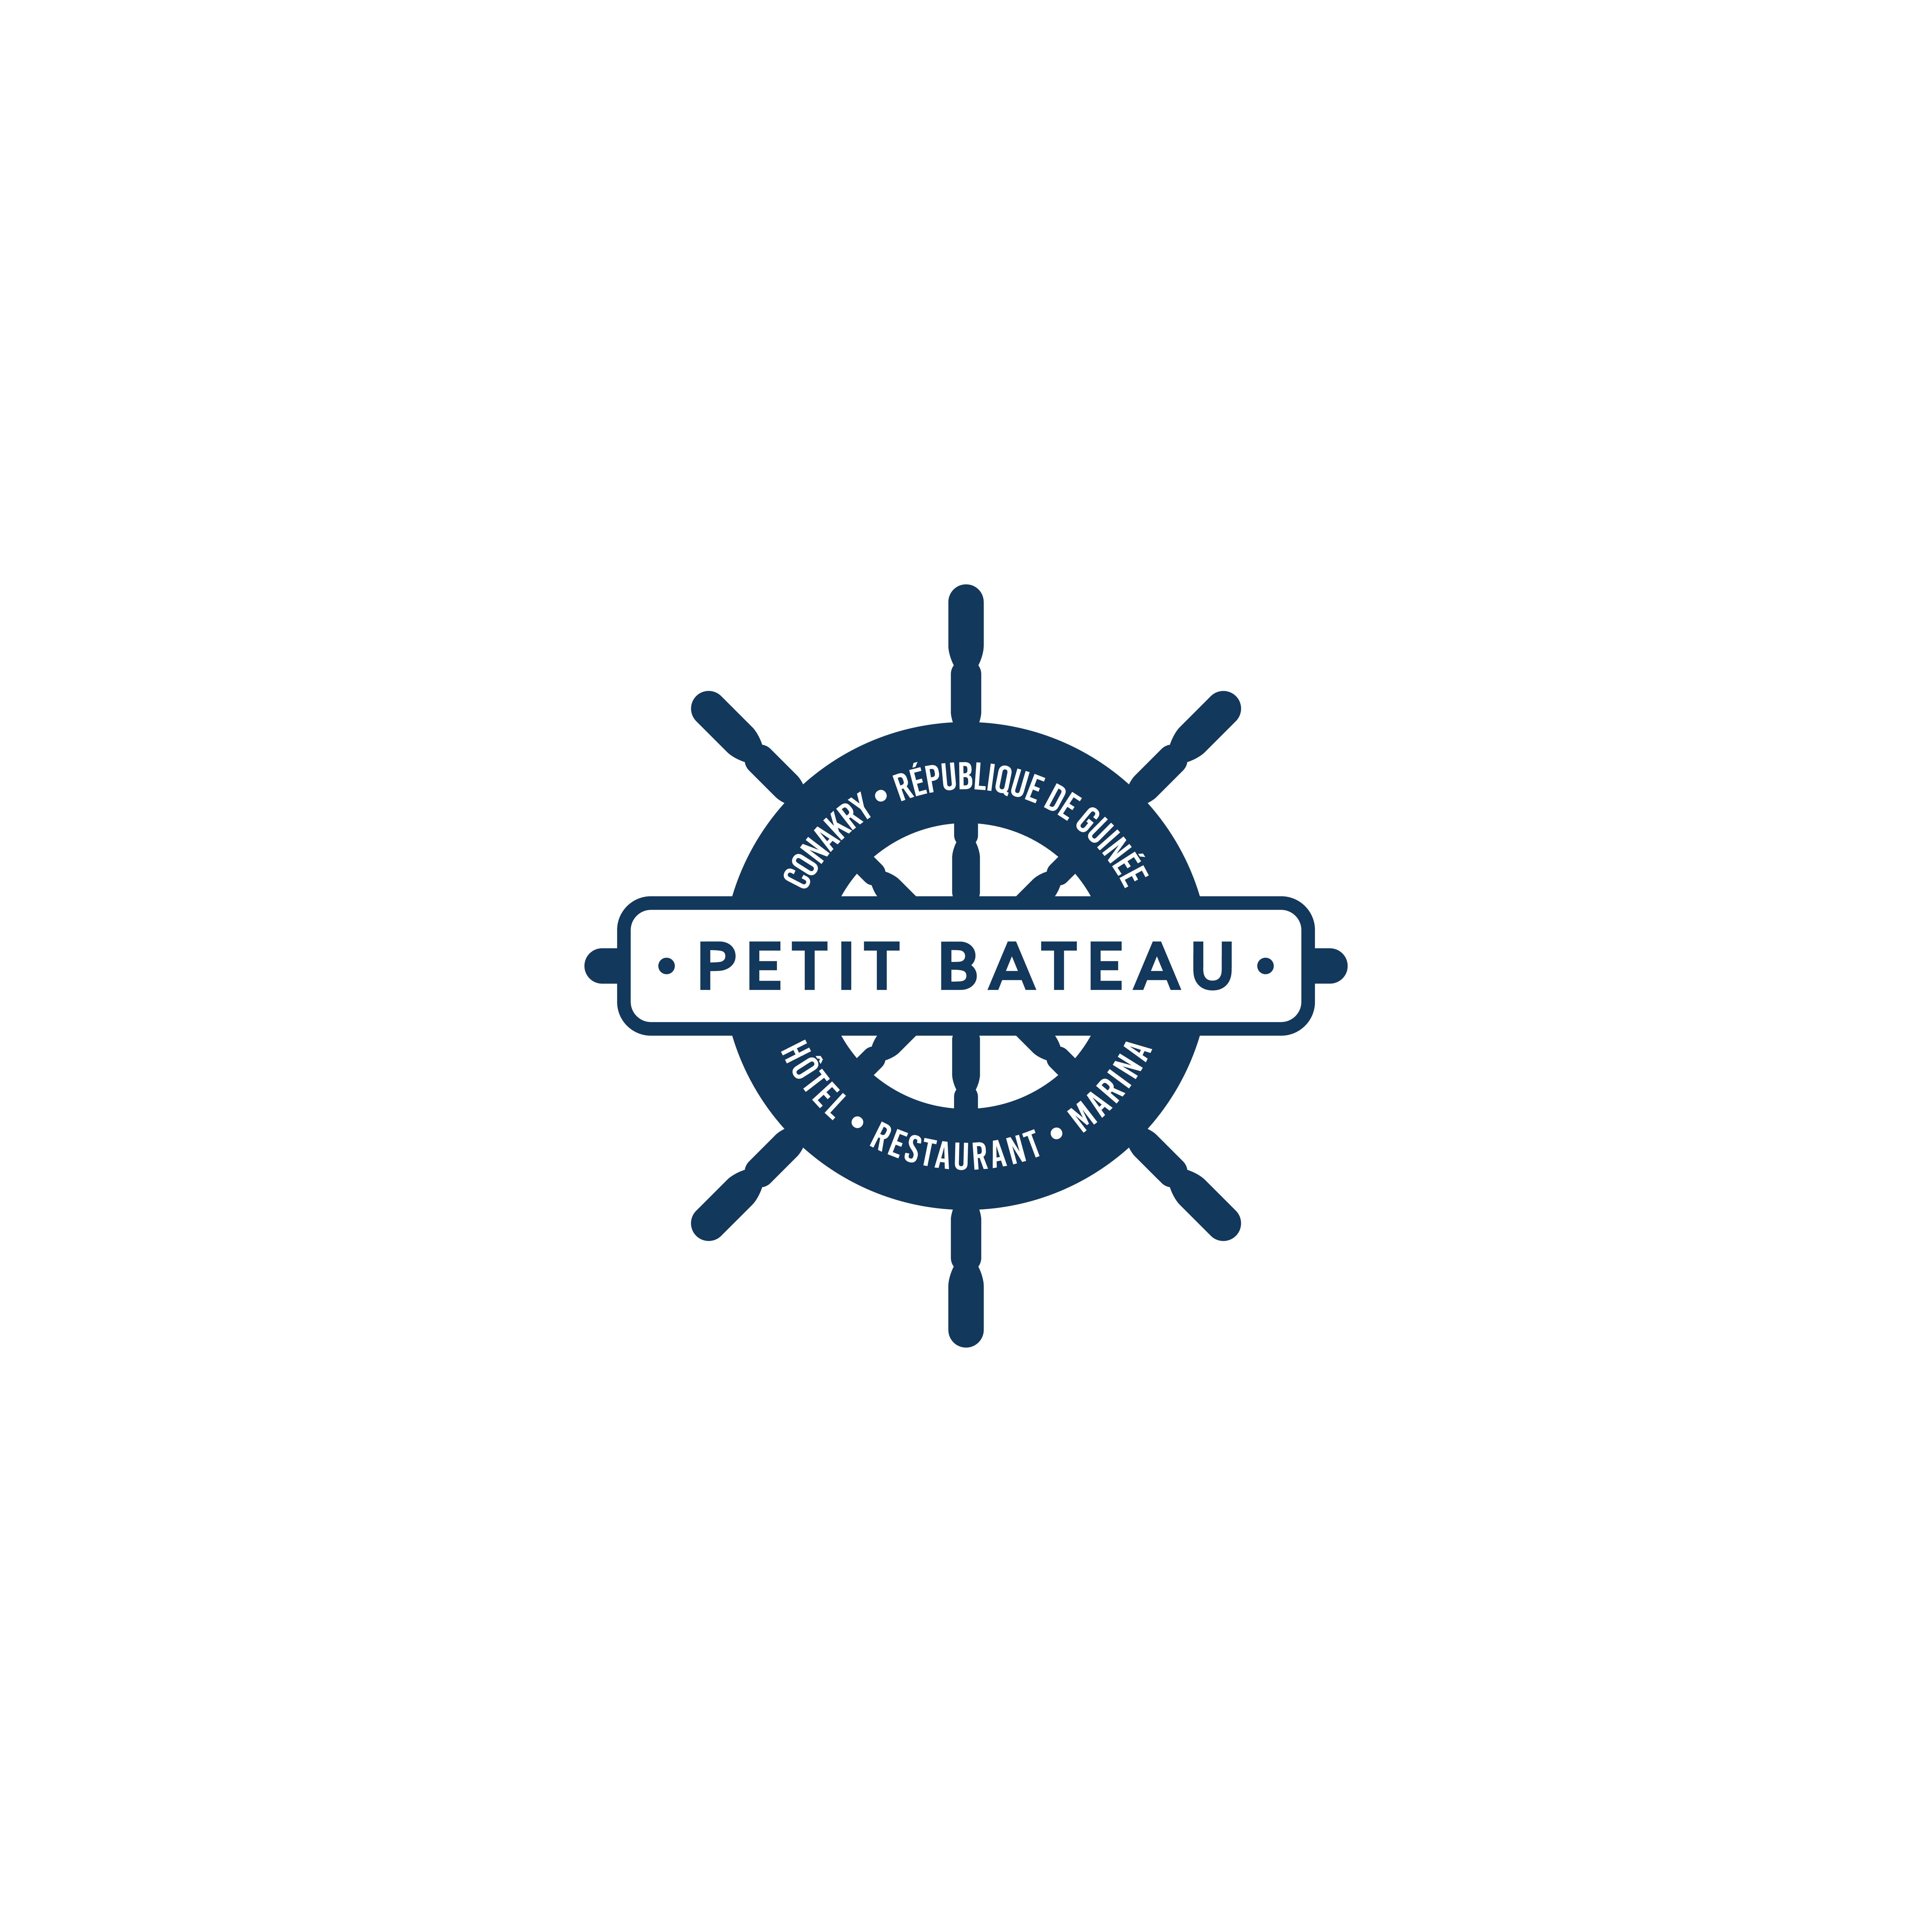 Create a peaceful minimalist logo for a hotel restaurant in Africa surrounded by the sea